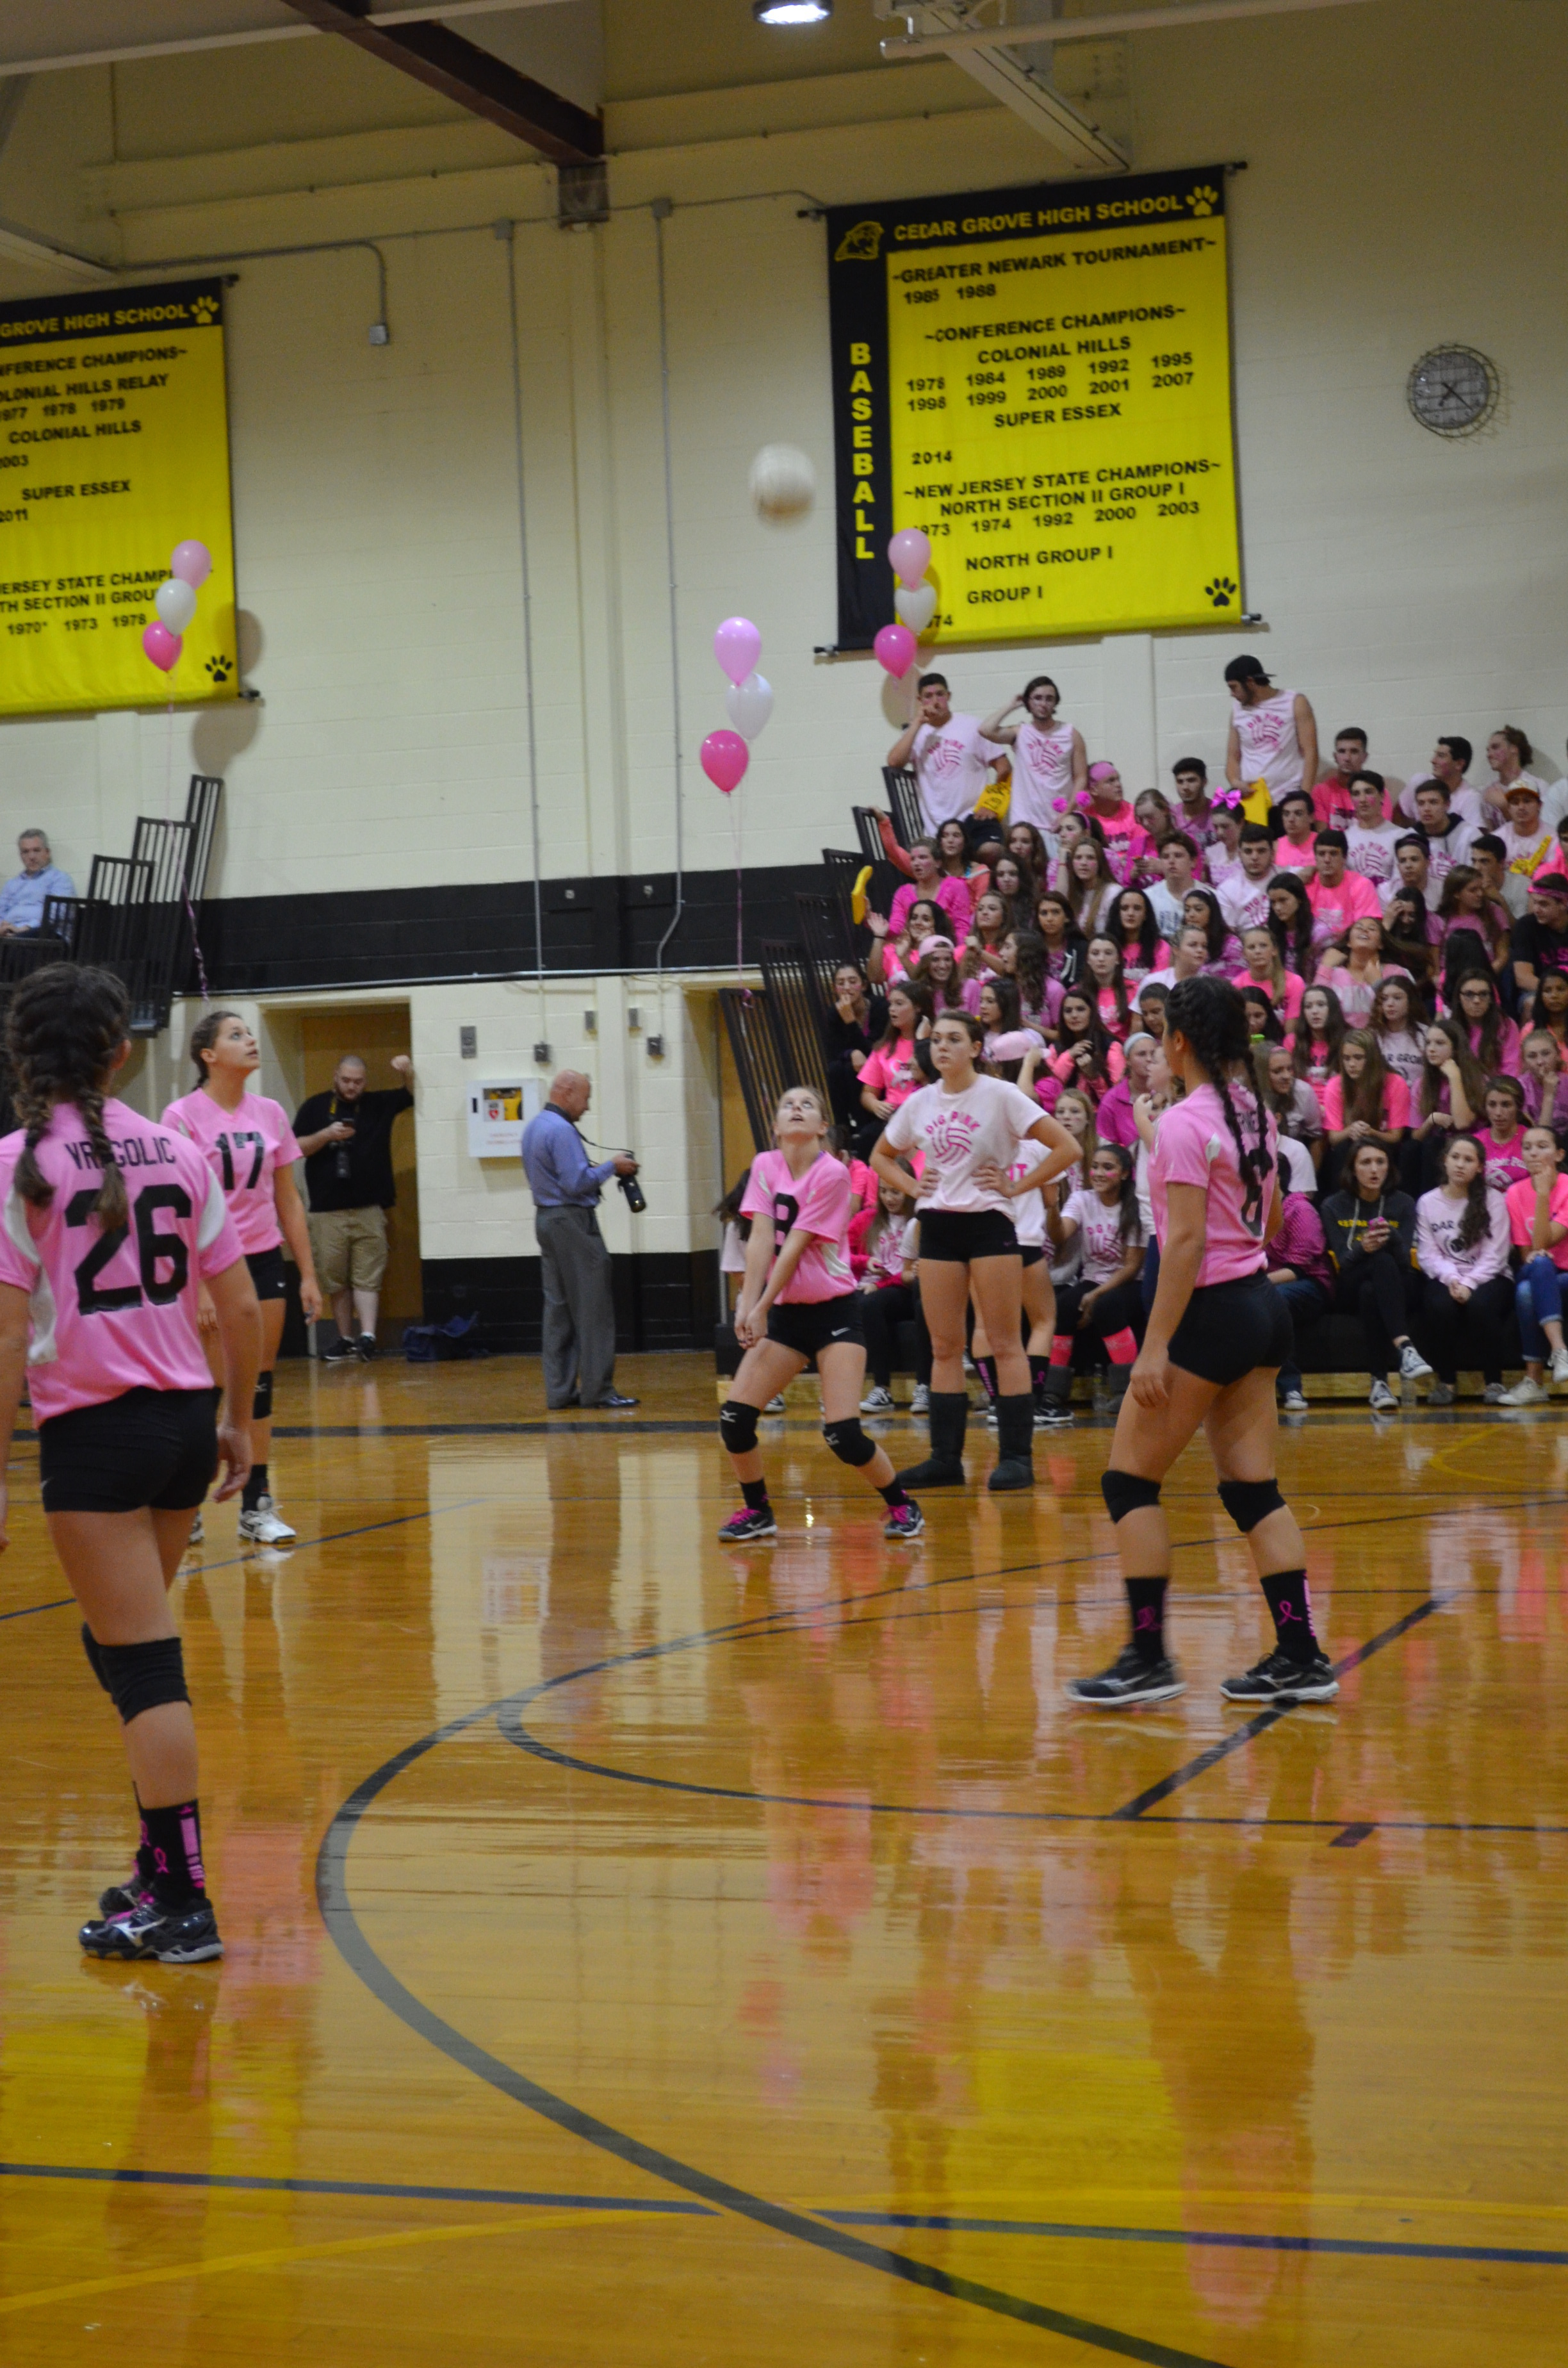 cedar grove single asian girls Get the latest cedar grove high school girls volleyball news, rankings, schedules , stats, scores, results, athletes info, and more at njcom.